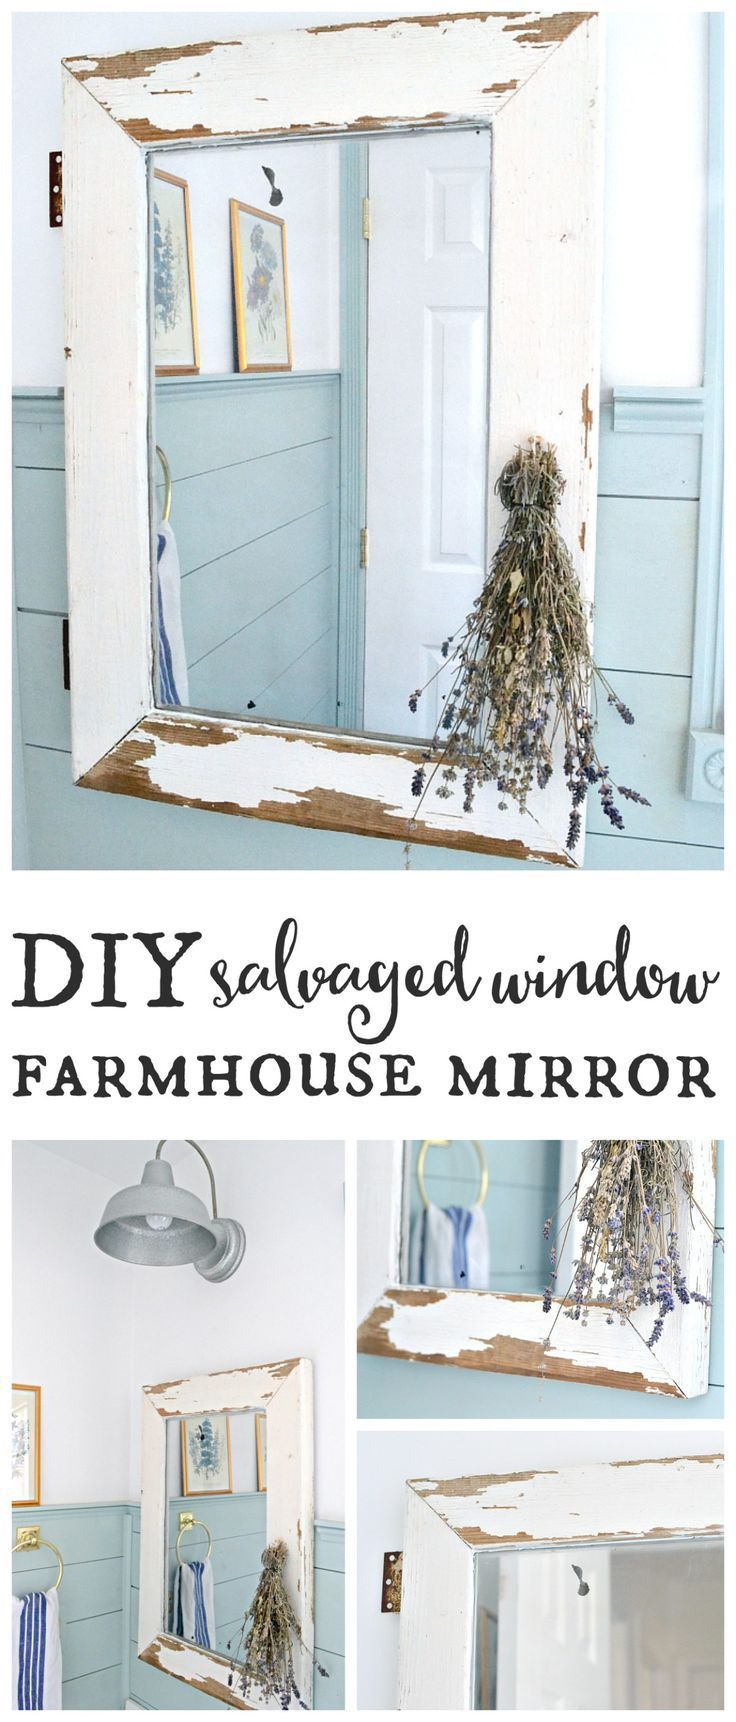 Salvaged window farmhouse mirror. Turn a salvaged window into a farmhouse mirror in just a few easy steps! Find it on http://theweatheredfox.com